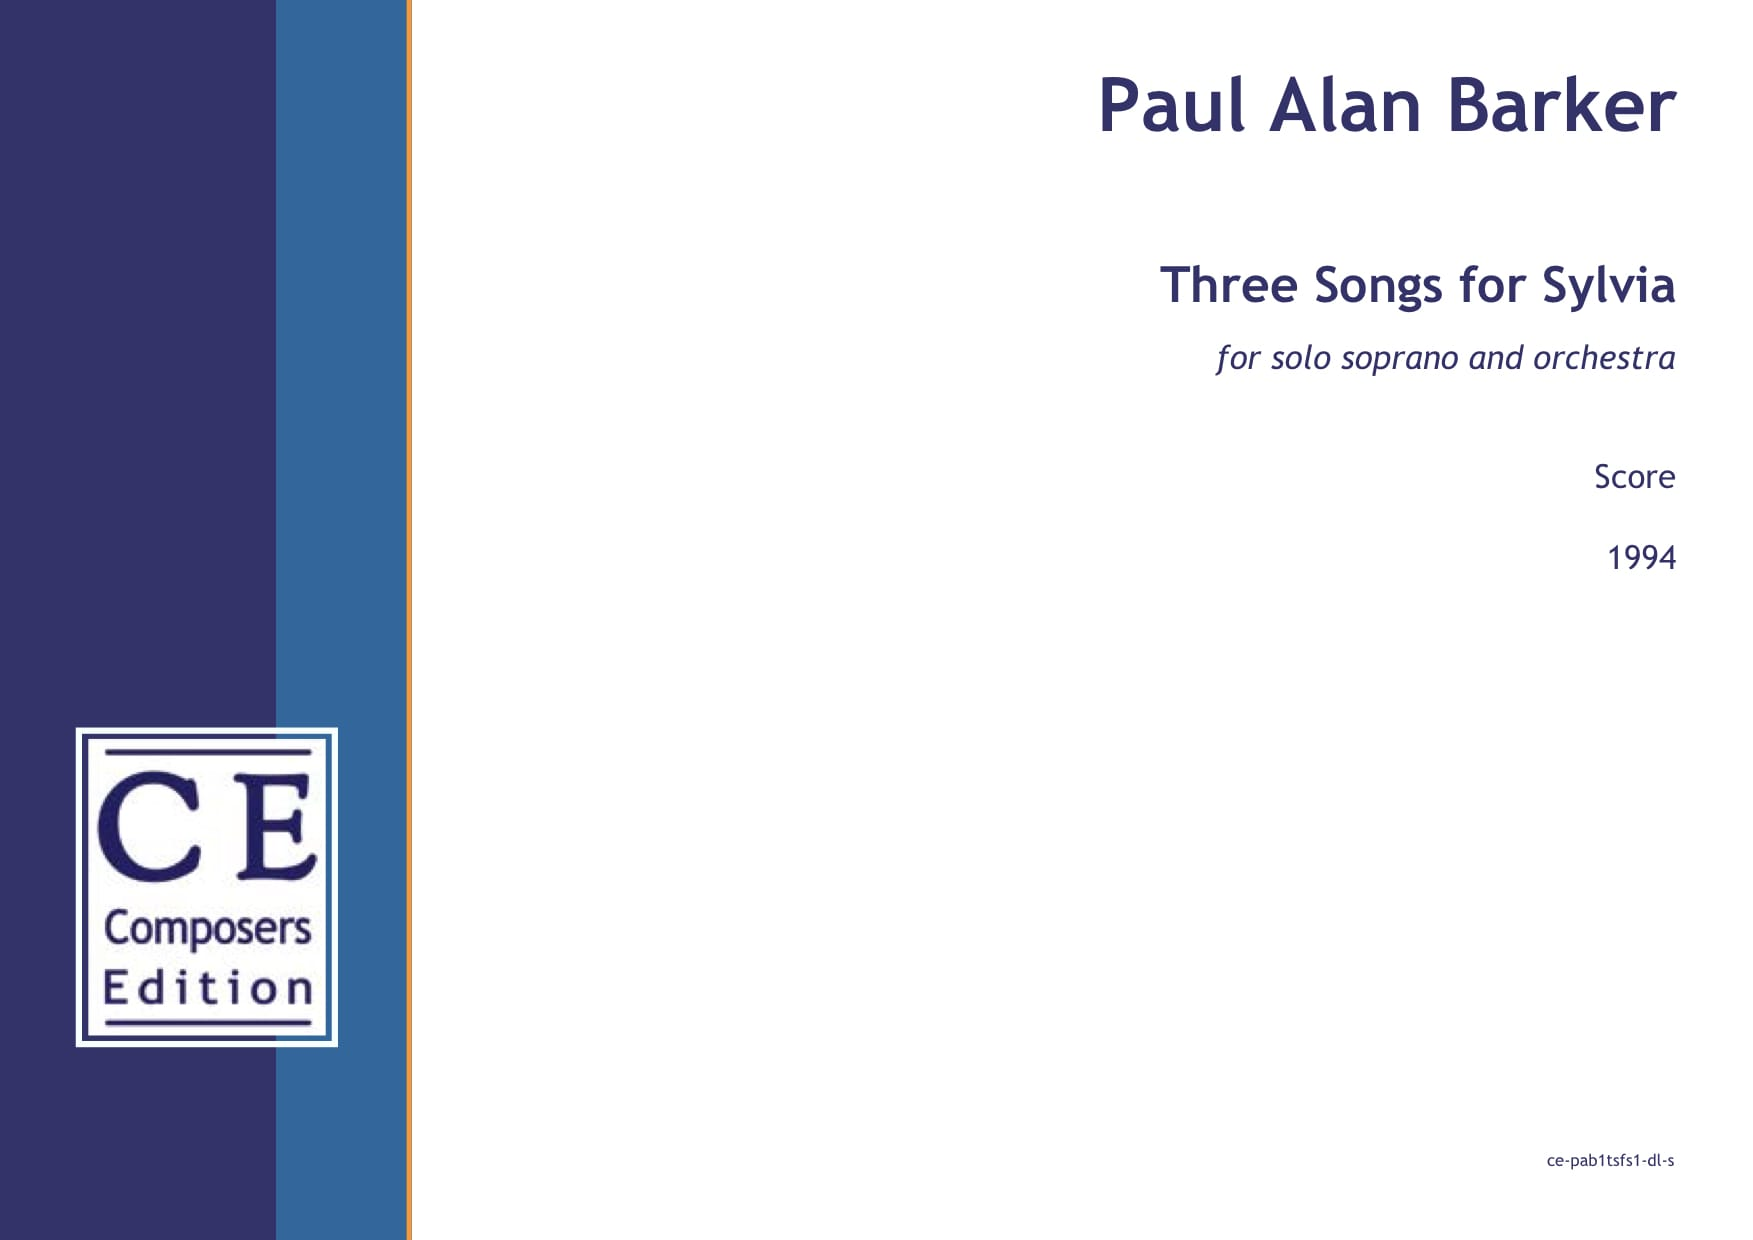 Paul Alan Barker: Three Songs for Sylvia for solo soprano and orchestra